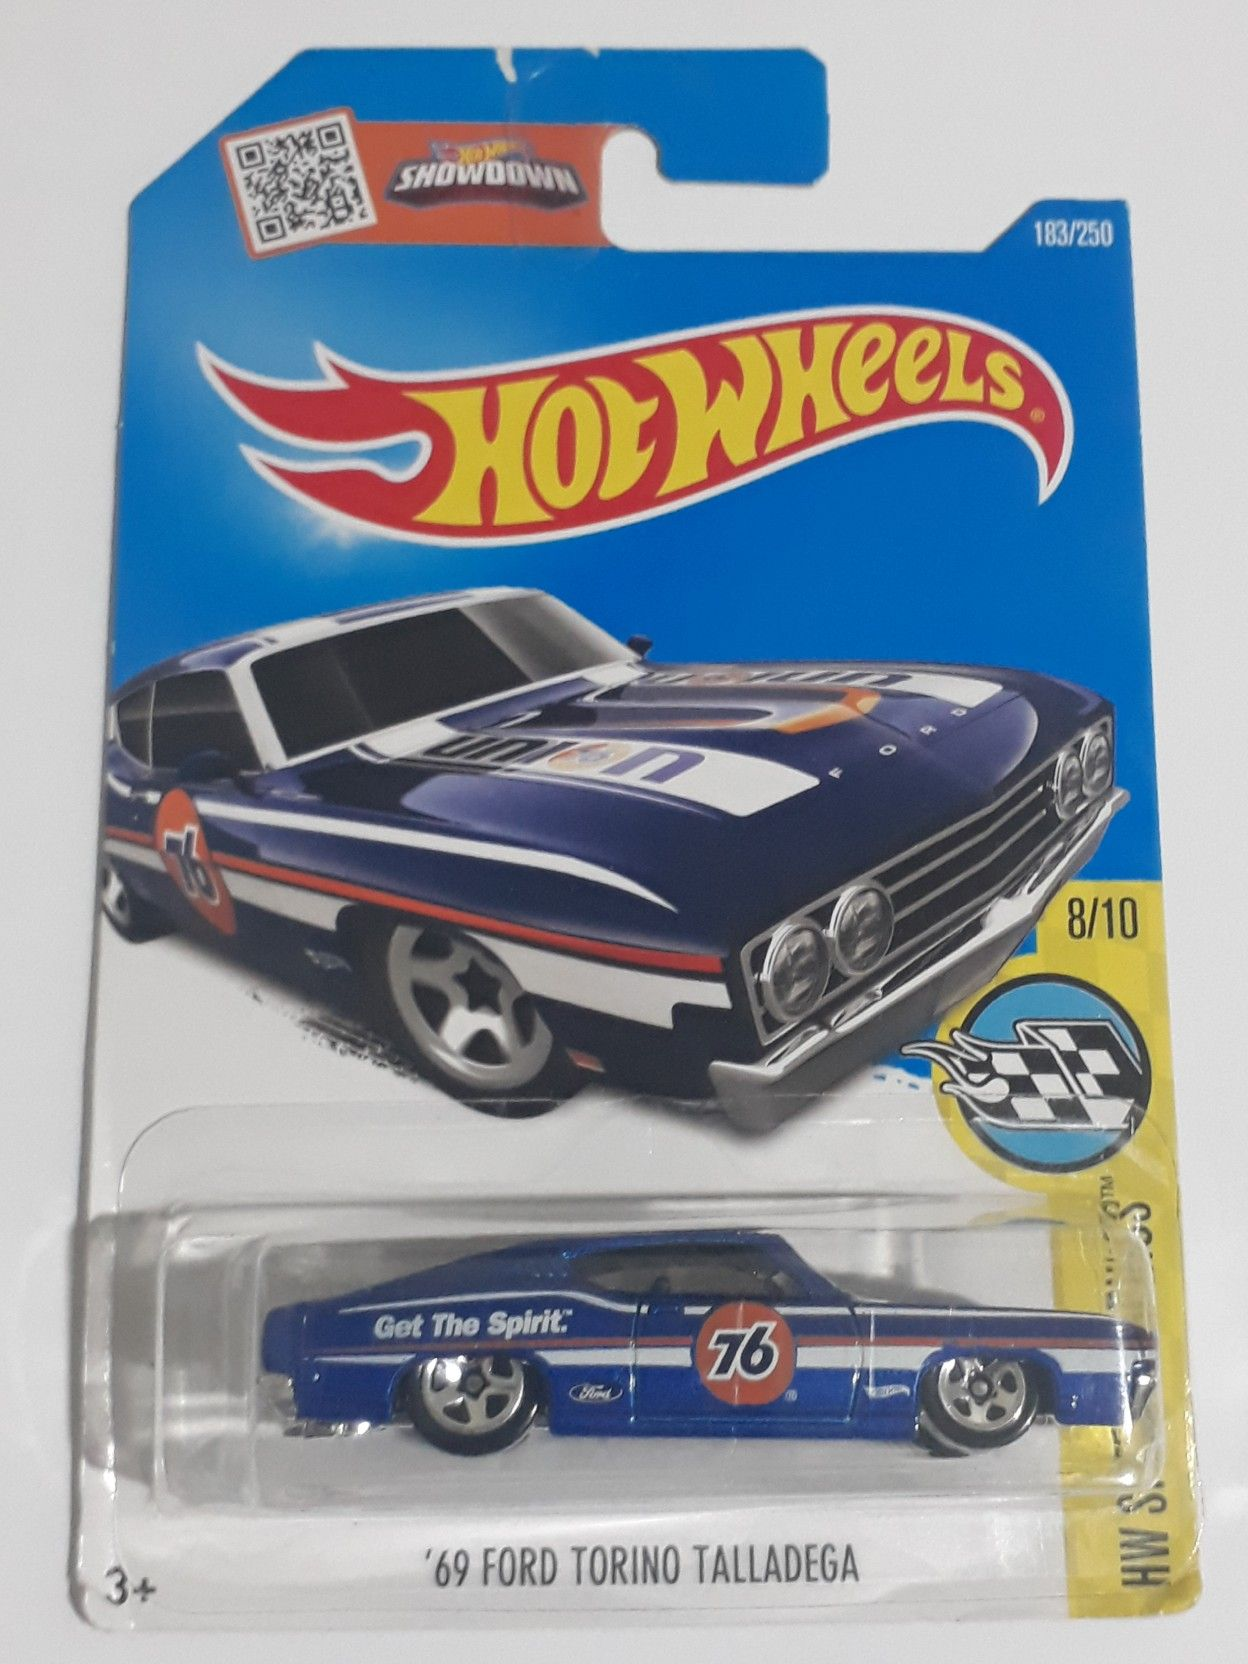 Pin By Leitto Wendel On Sick Rides Hot Wheels Cars Hot Wheels Oil Service